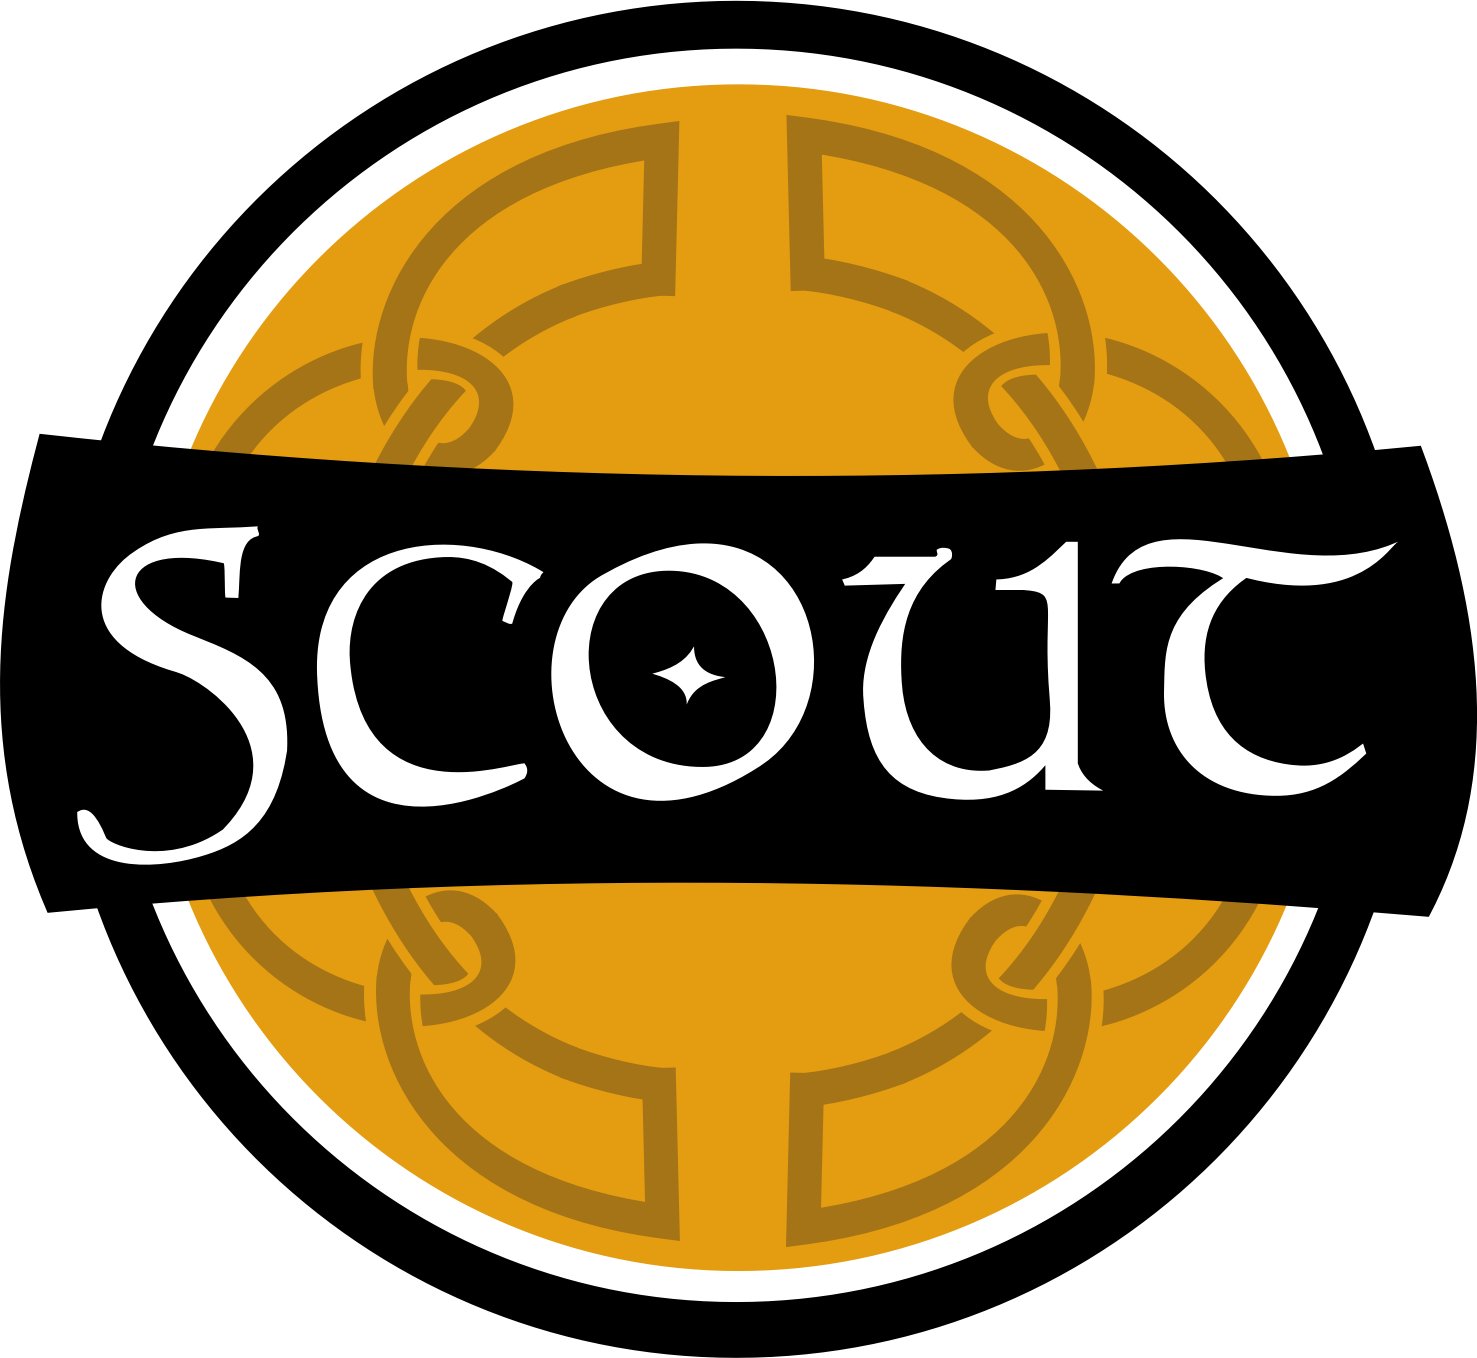 Scout celtic sign by kapn